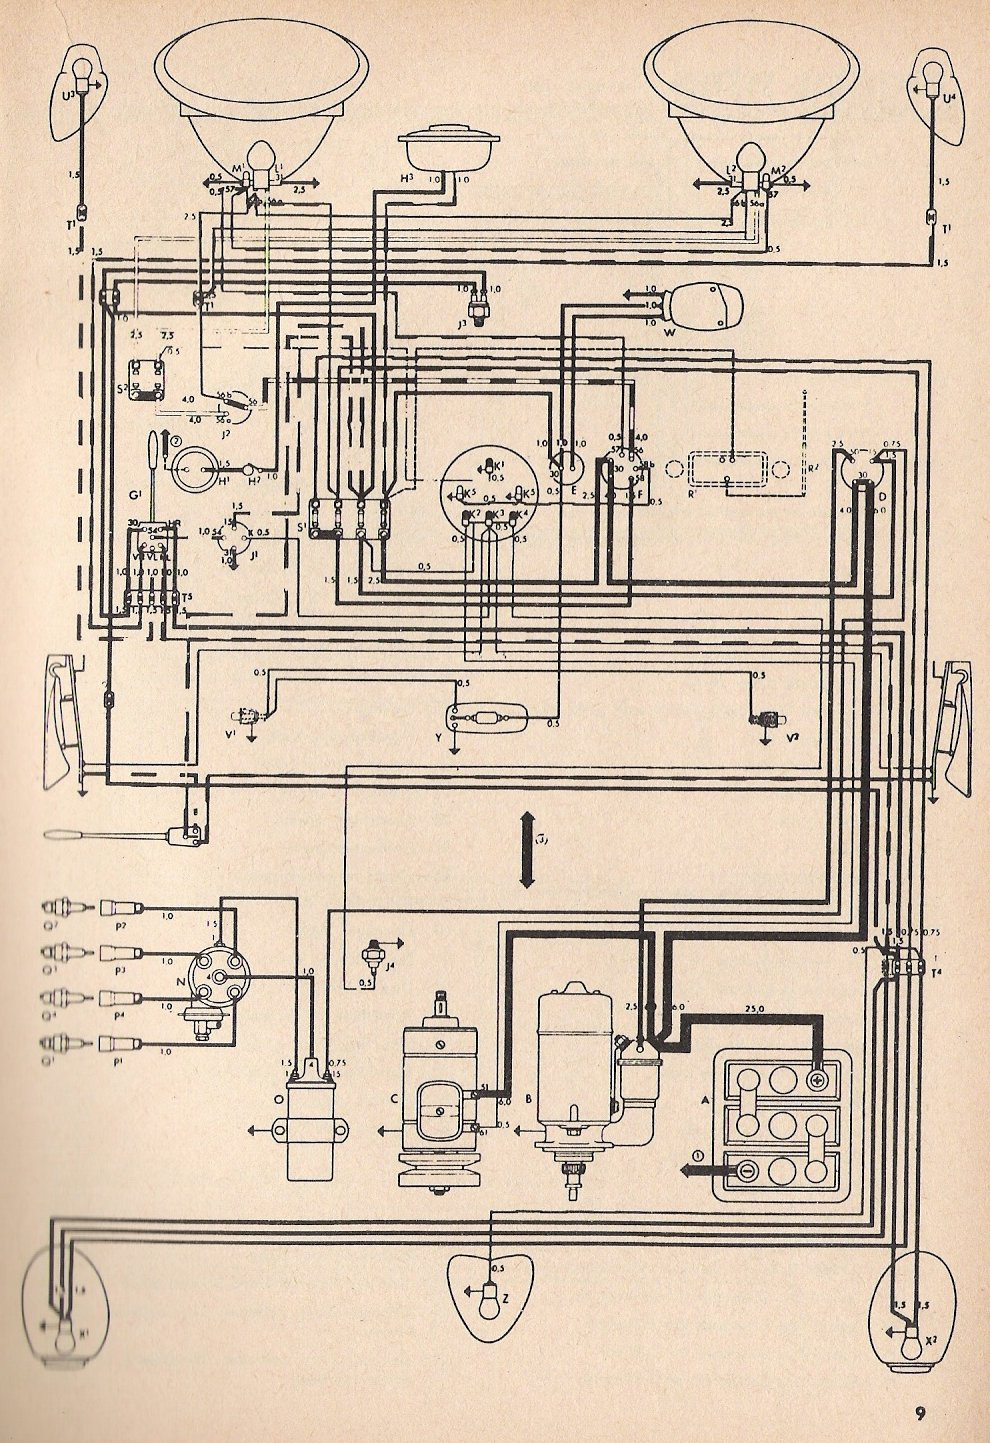 1973 Vw Bug Wiring Diagram Blog About Diagrams 67 Mustang Engine Thesamba Com Type 1 Super Beetle